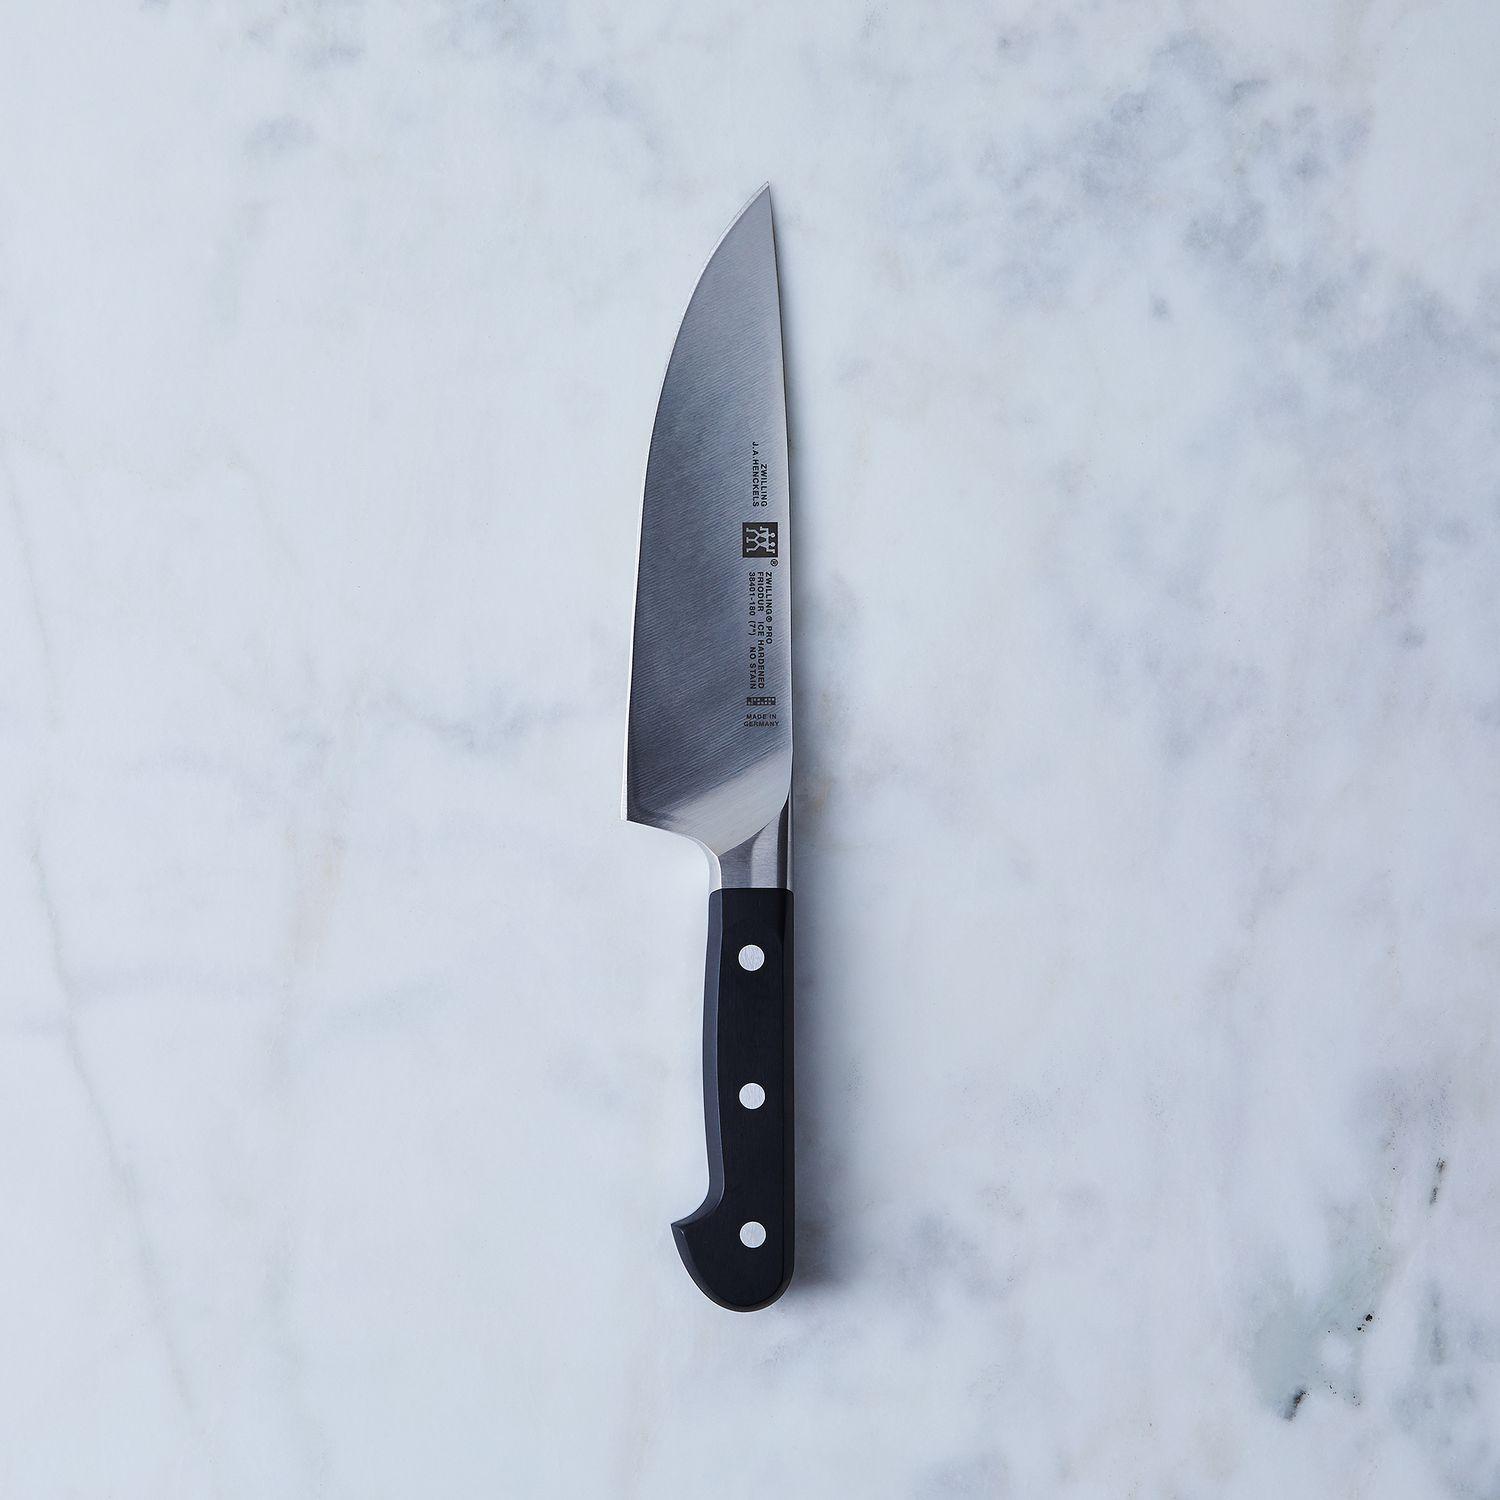 Zwilling J A Henckels Pro Chef S Knife 7 Quot On Food52